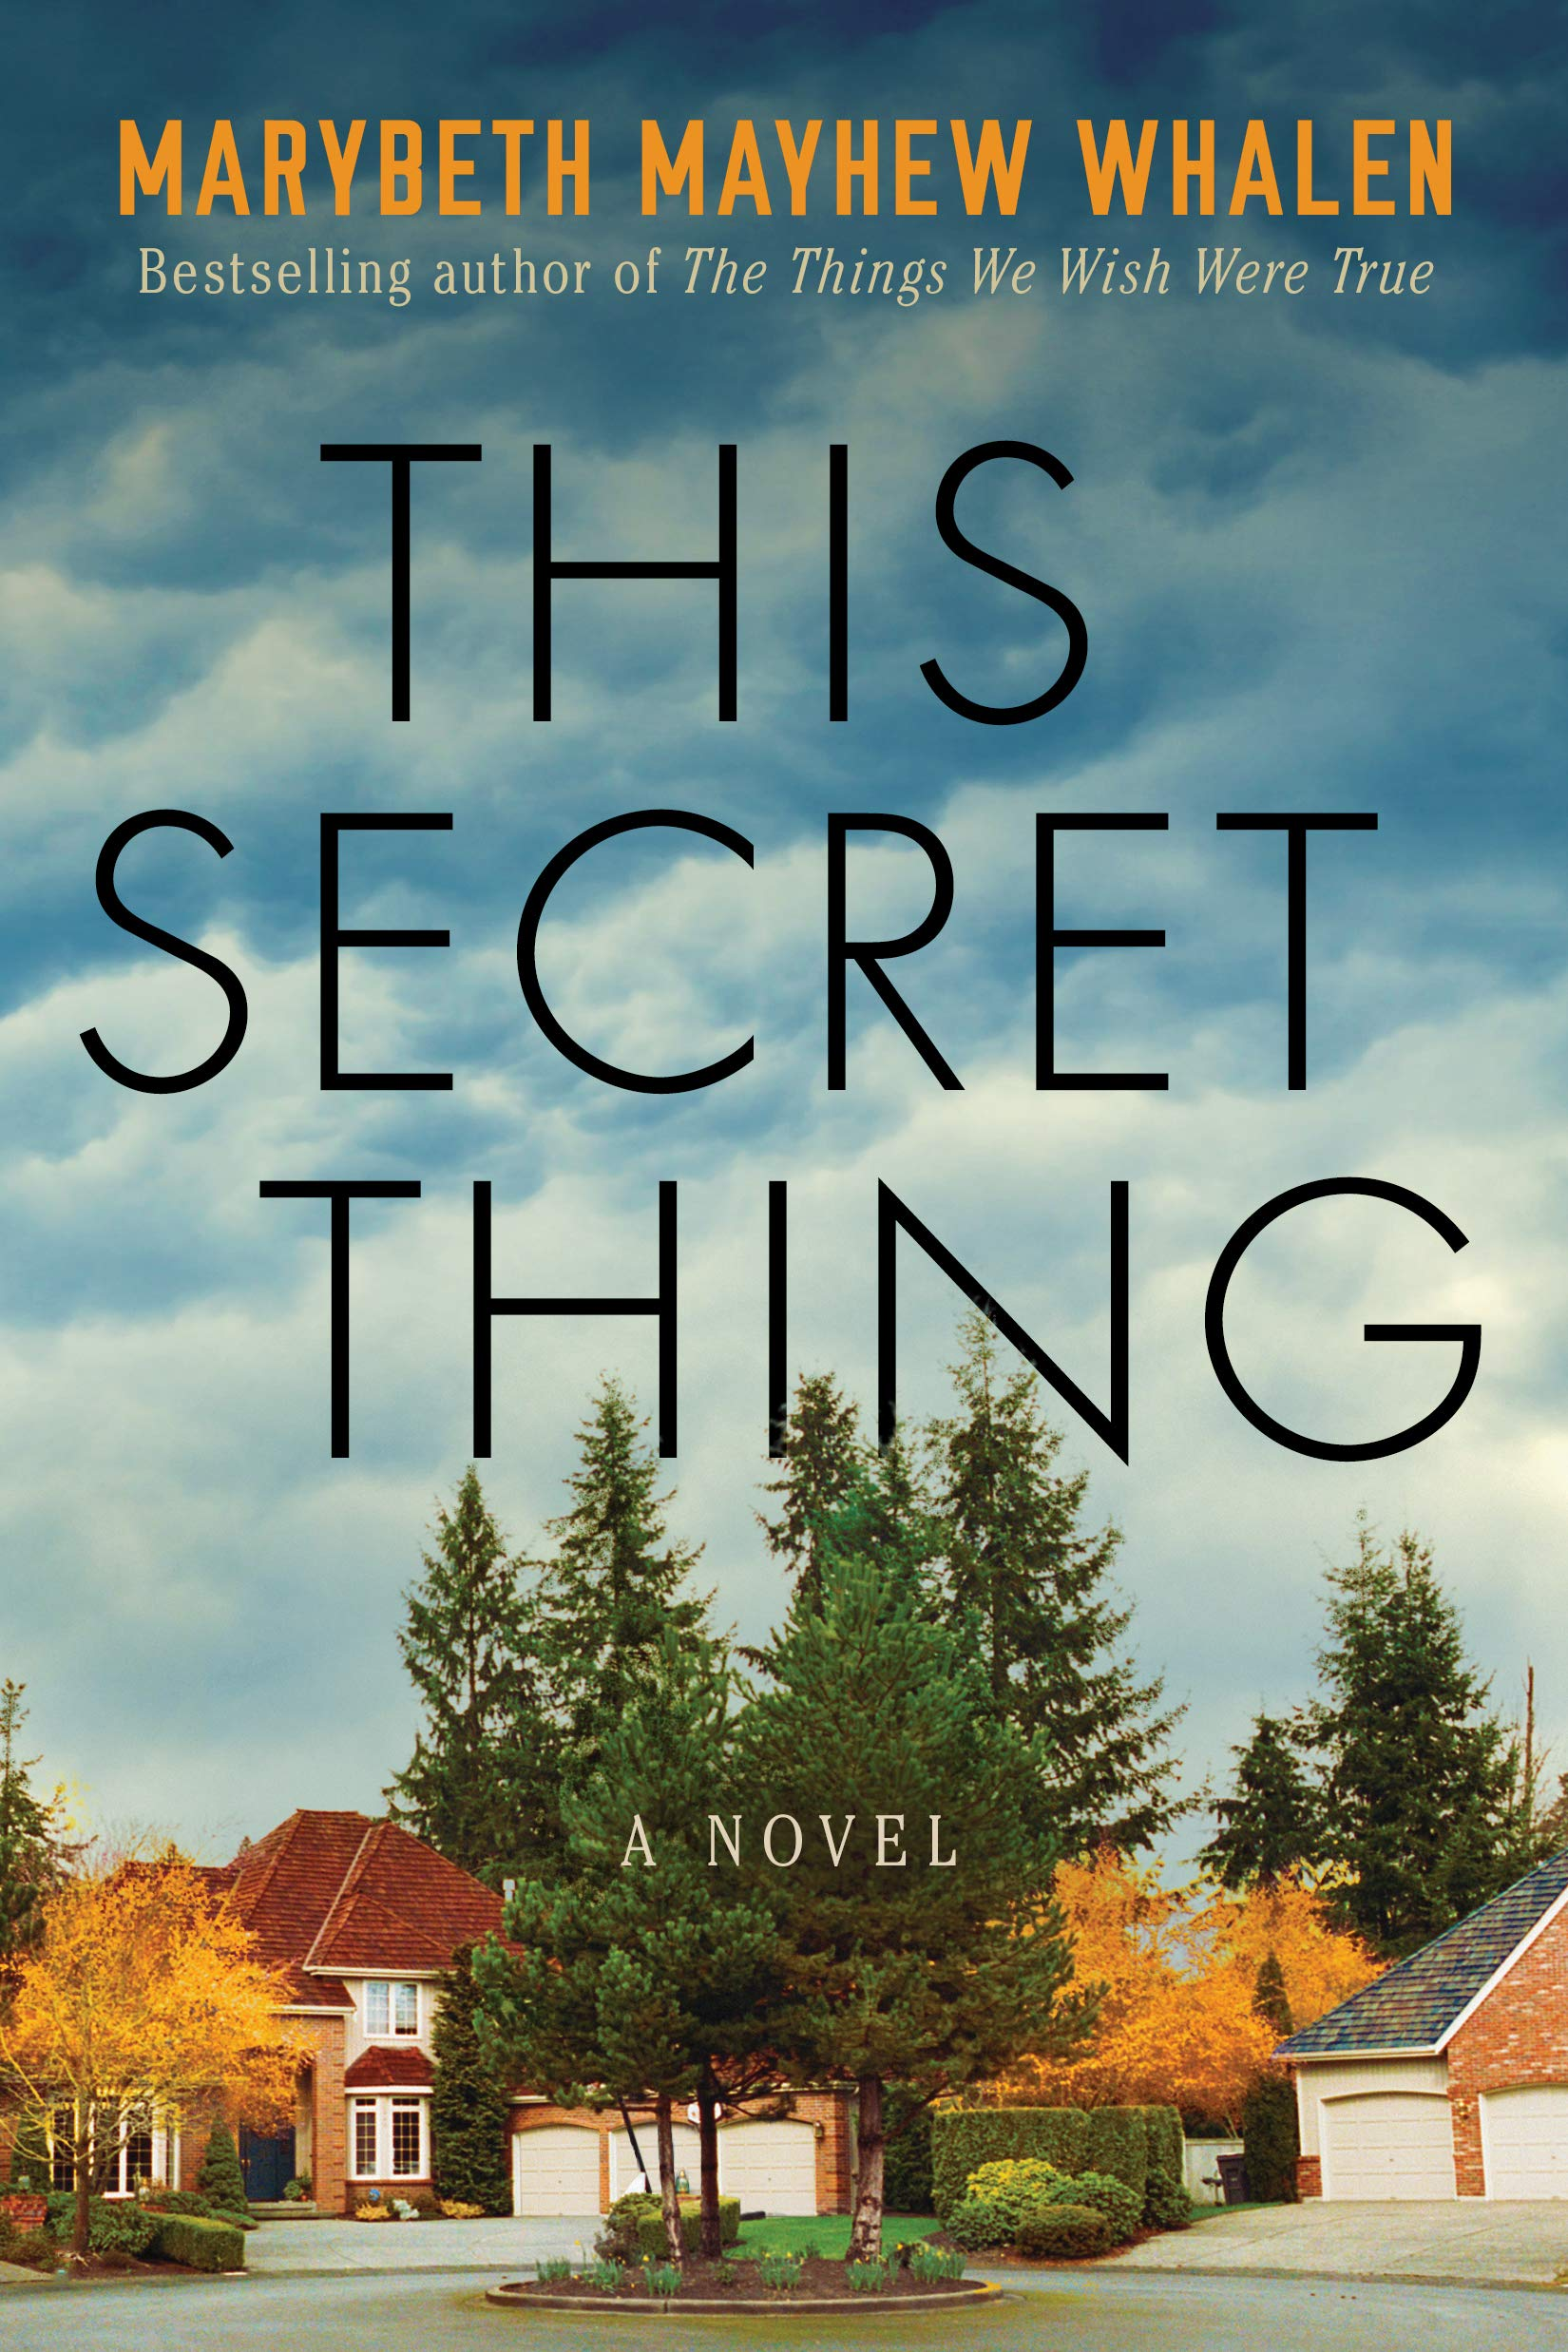 The cover of This Secret Thing, a gift for a Christmas Book Flood